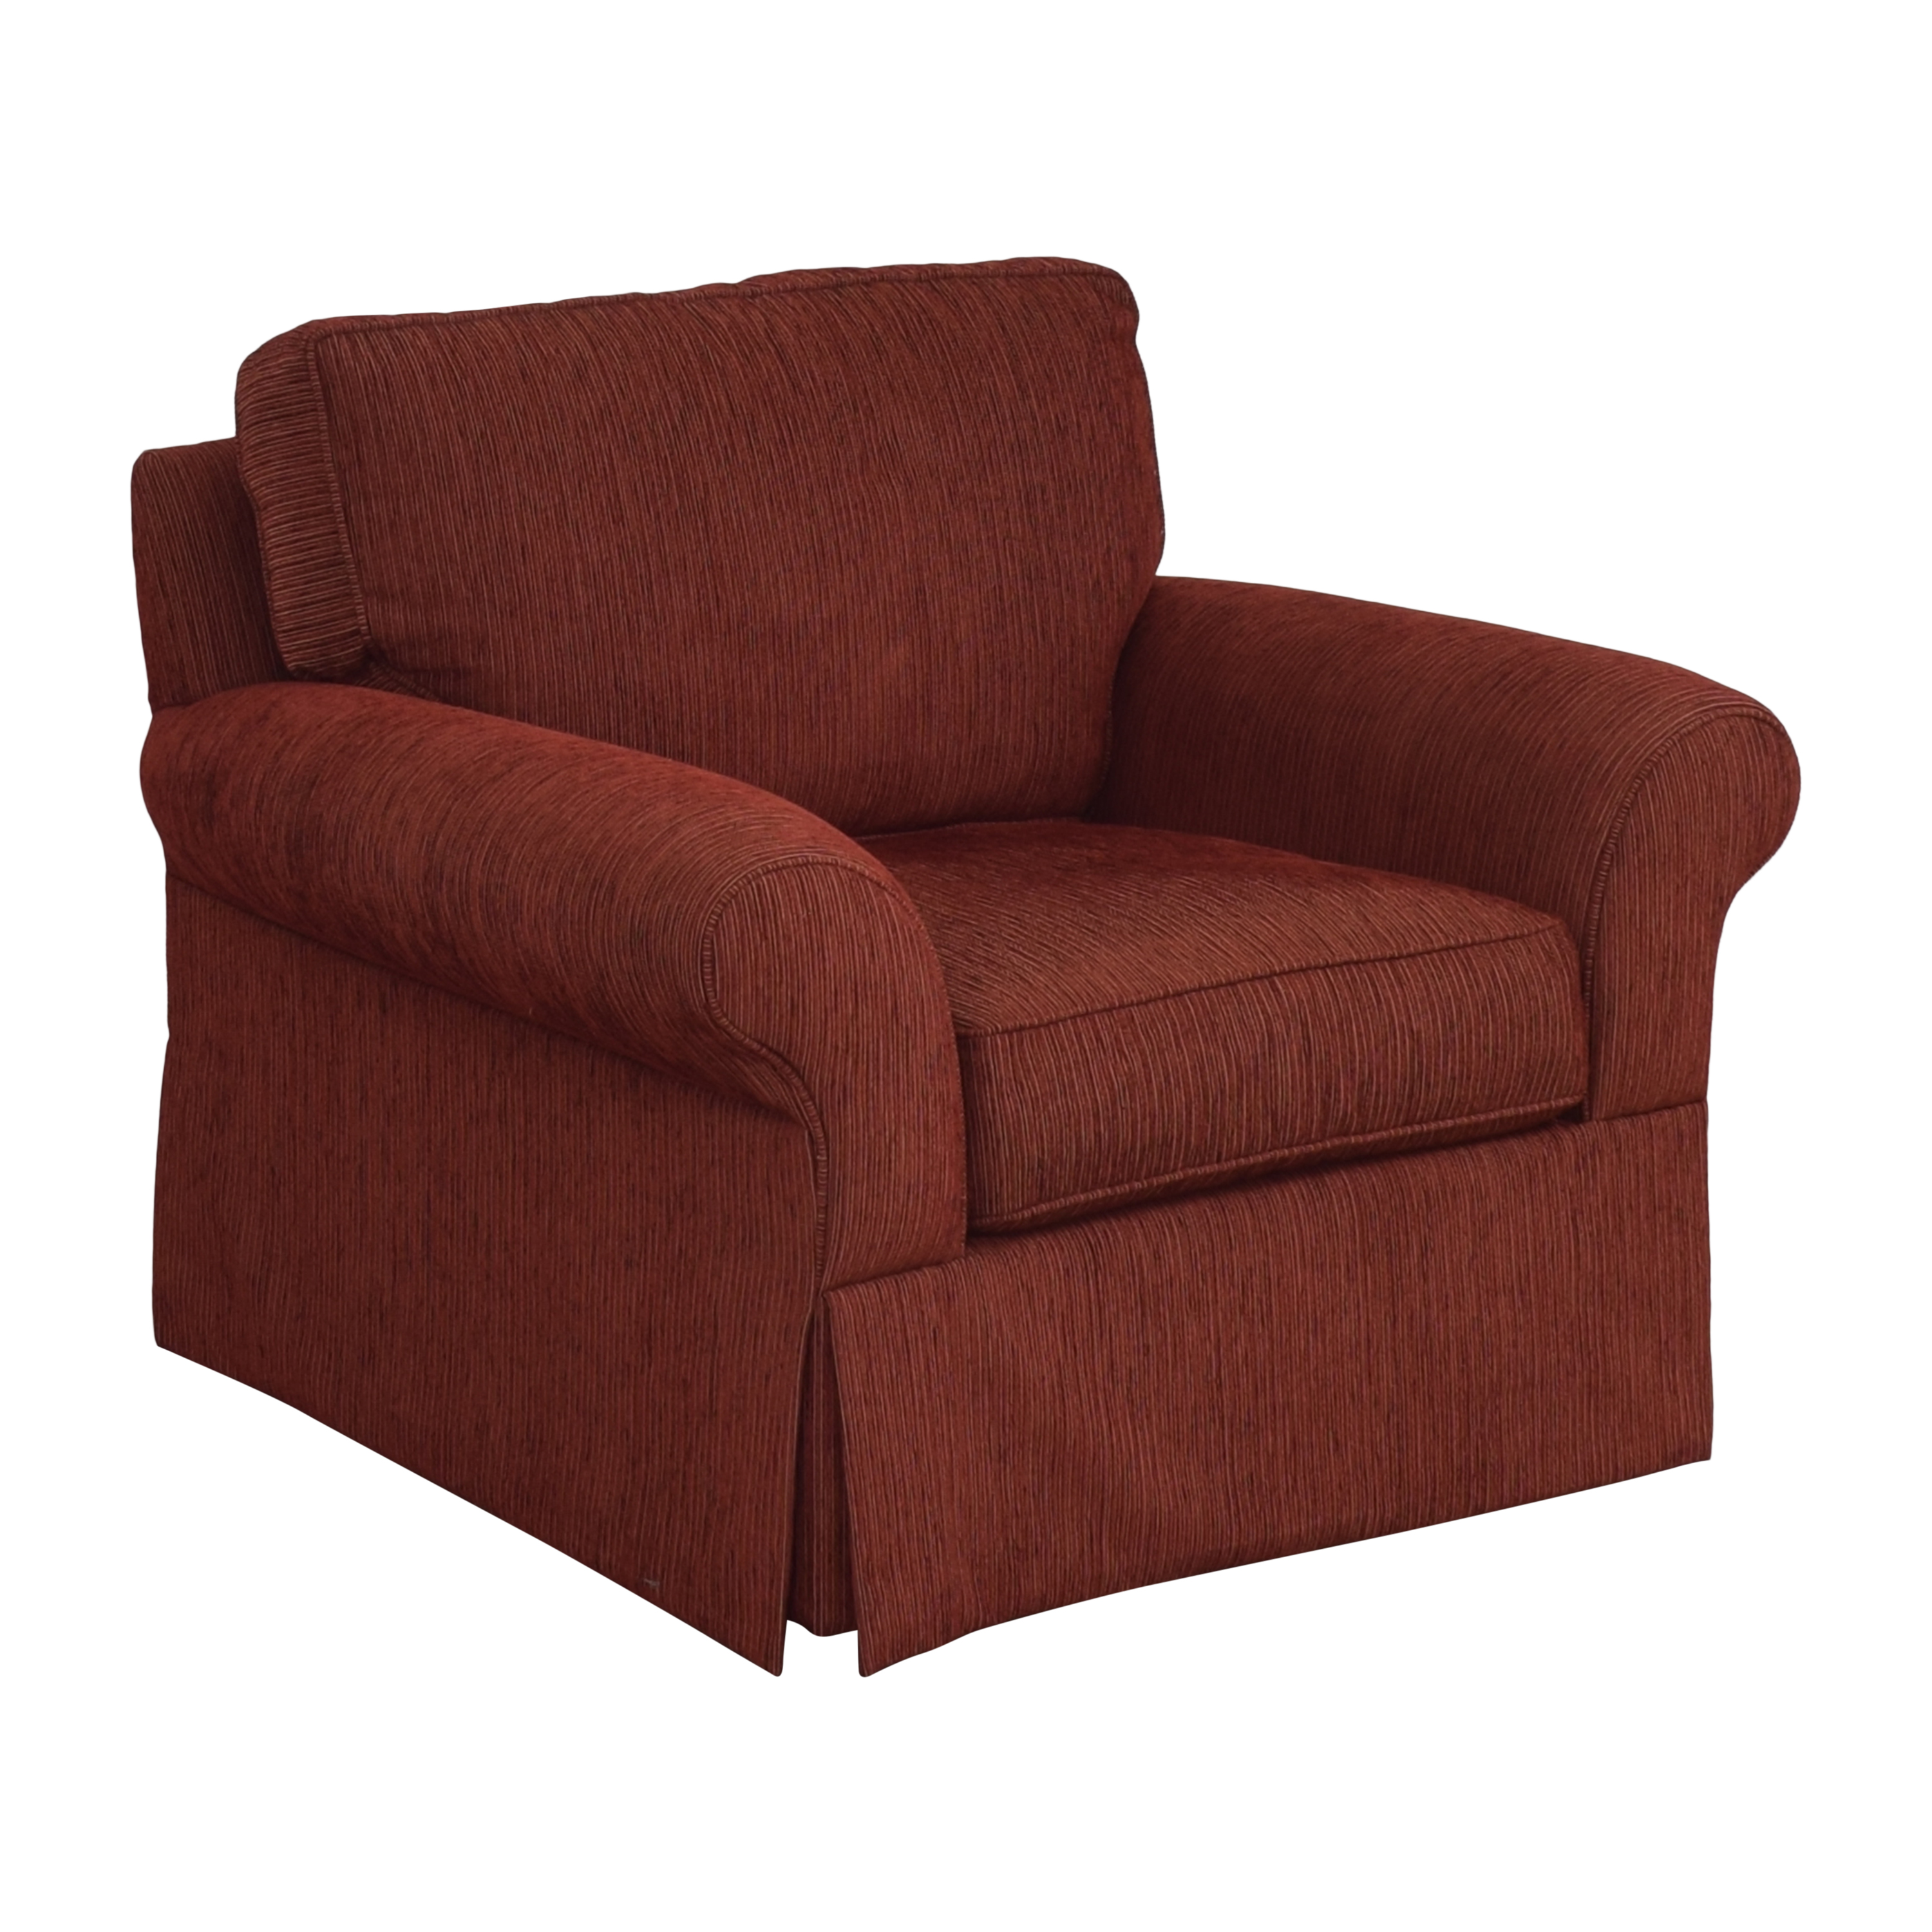 Crate & Barrel Crate & Barrel Skirted Roll Arm Accent Chair pa